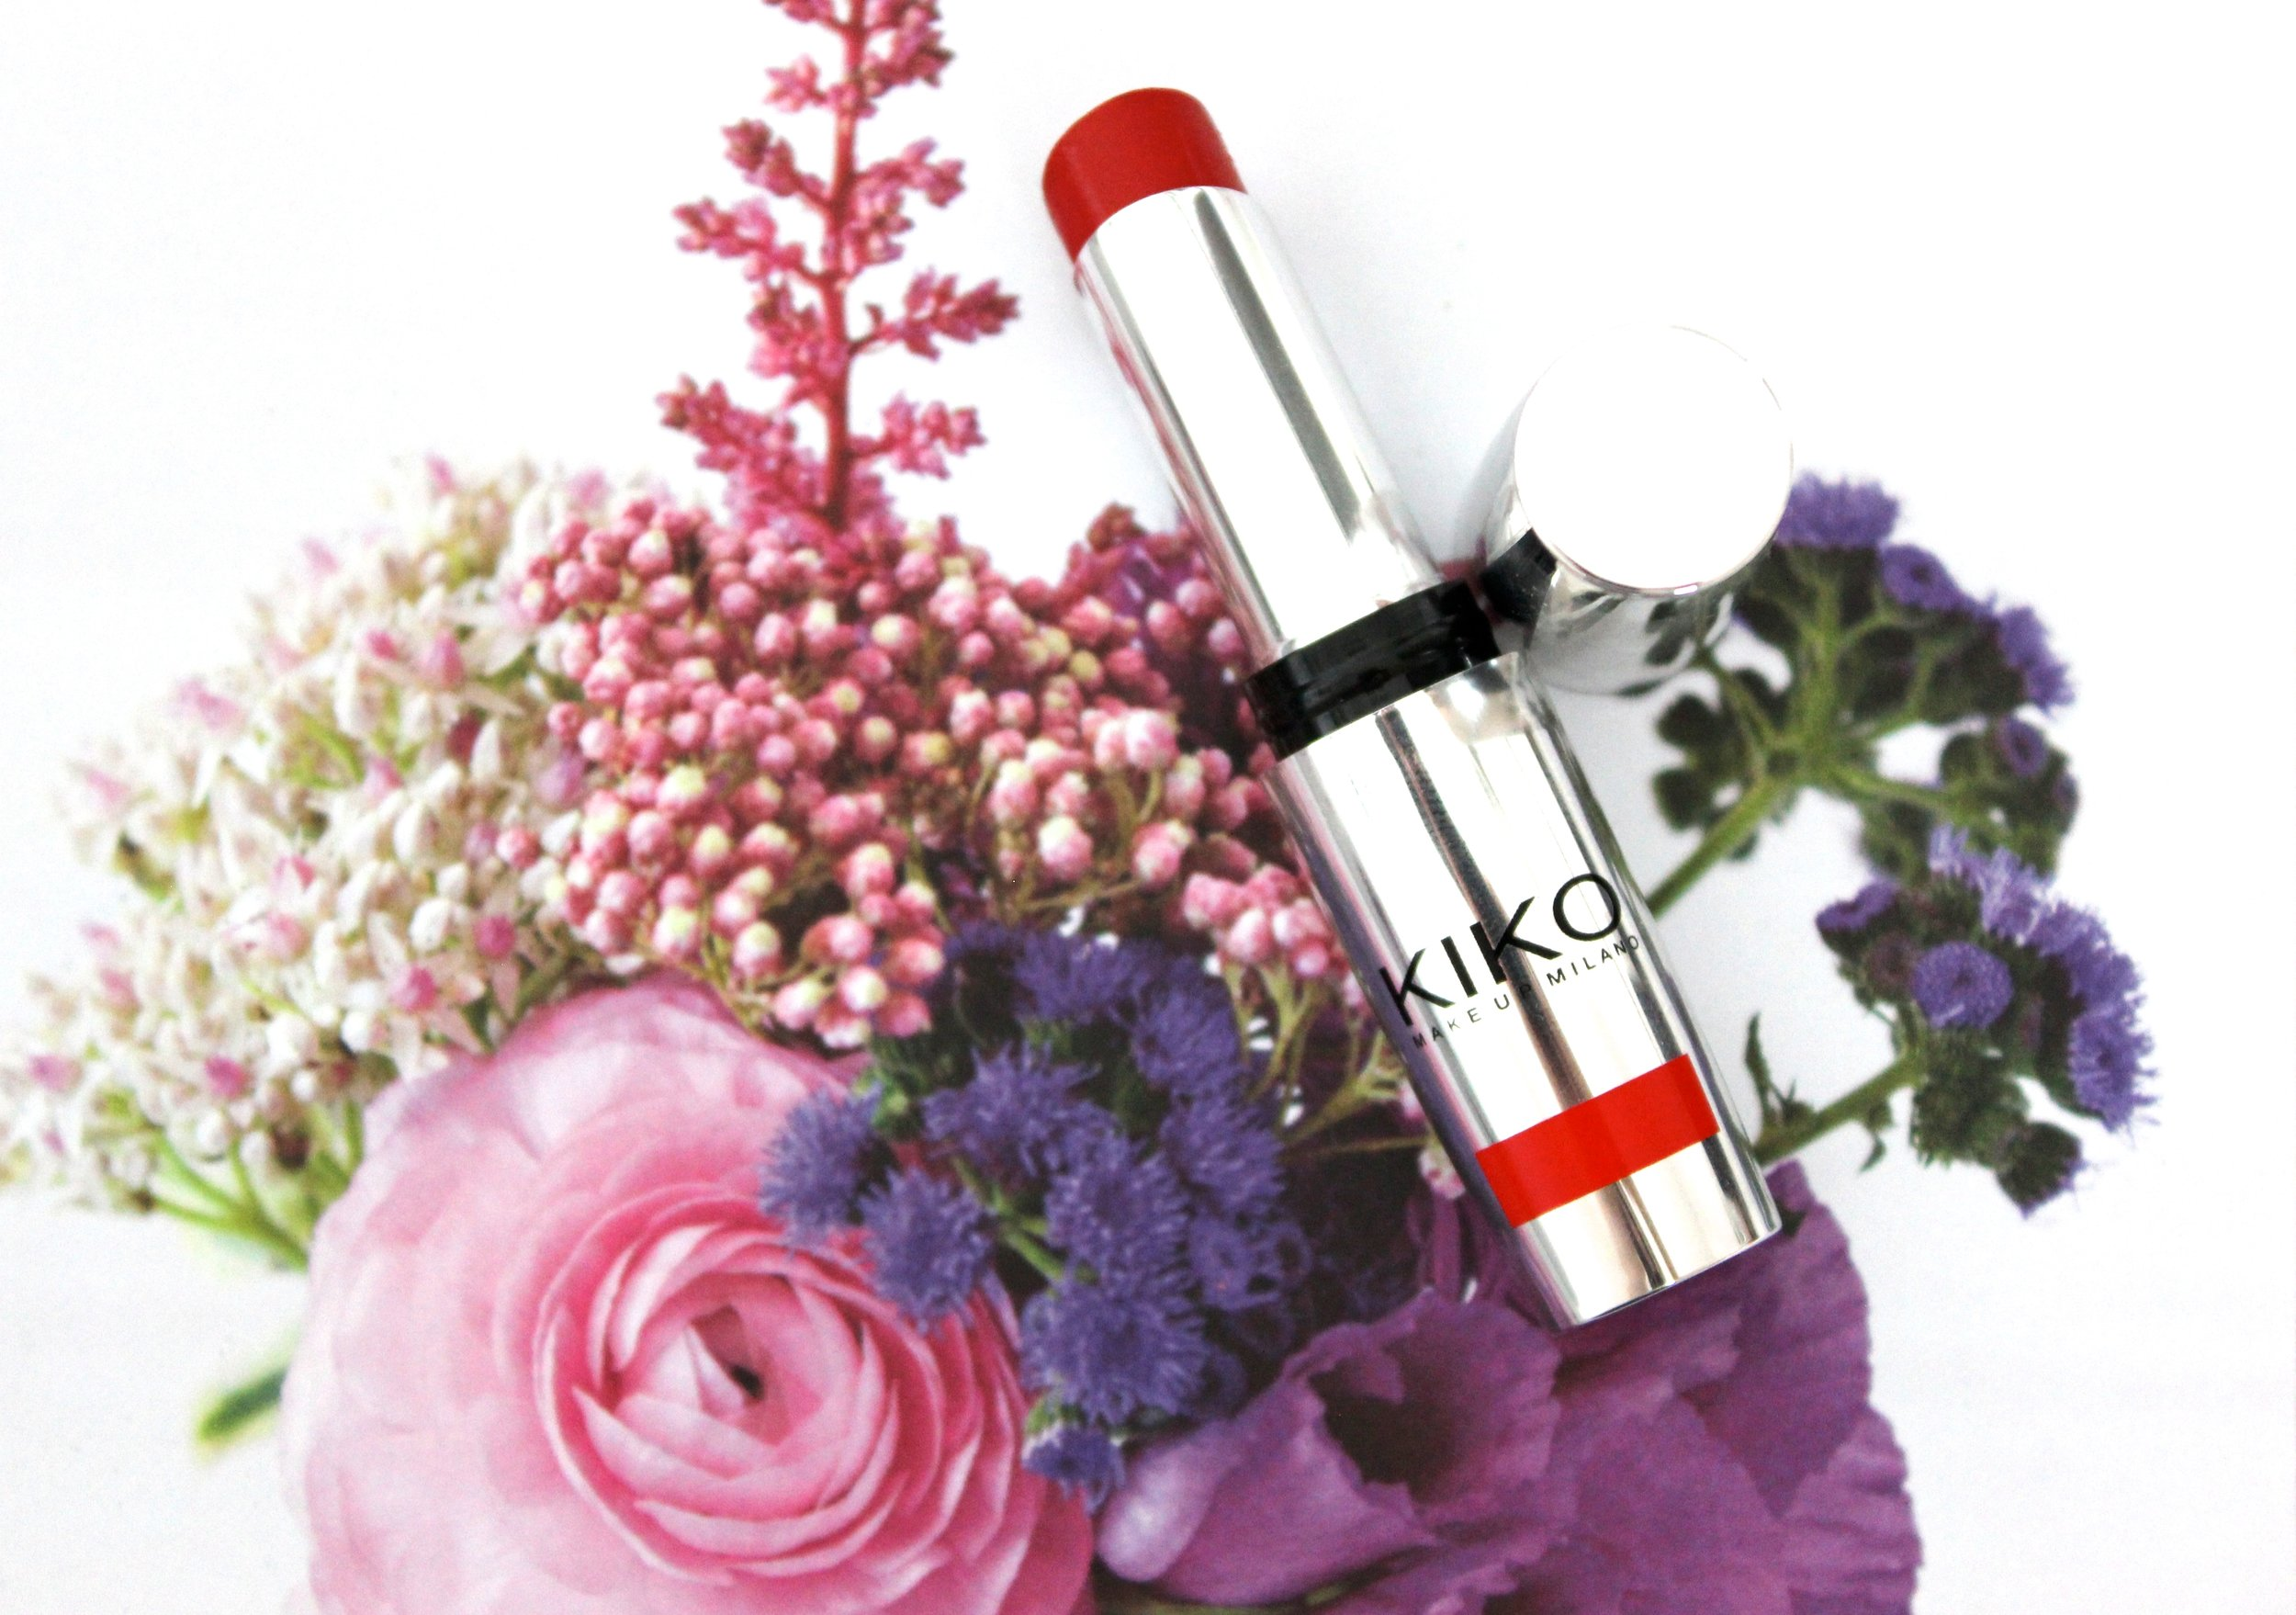 KIKO Poppy Red Lipstick